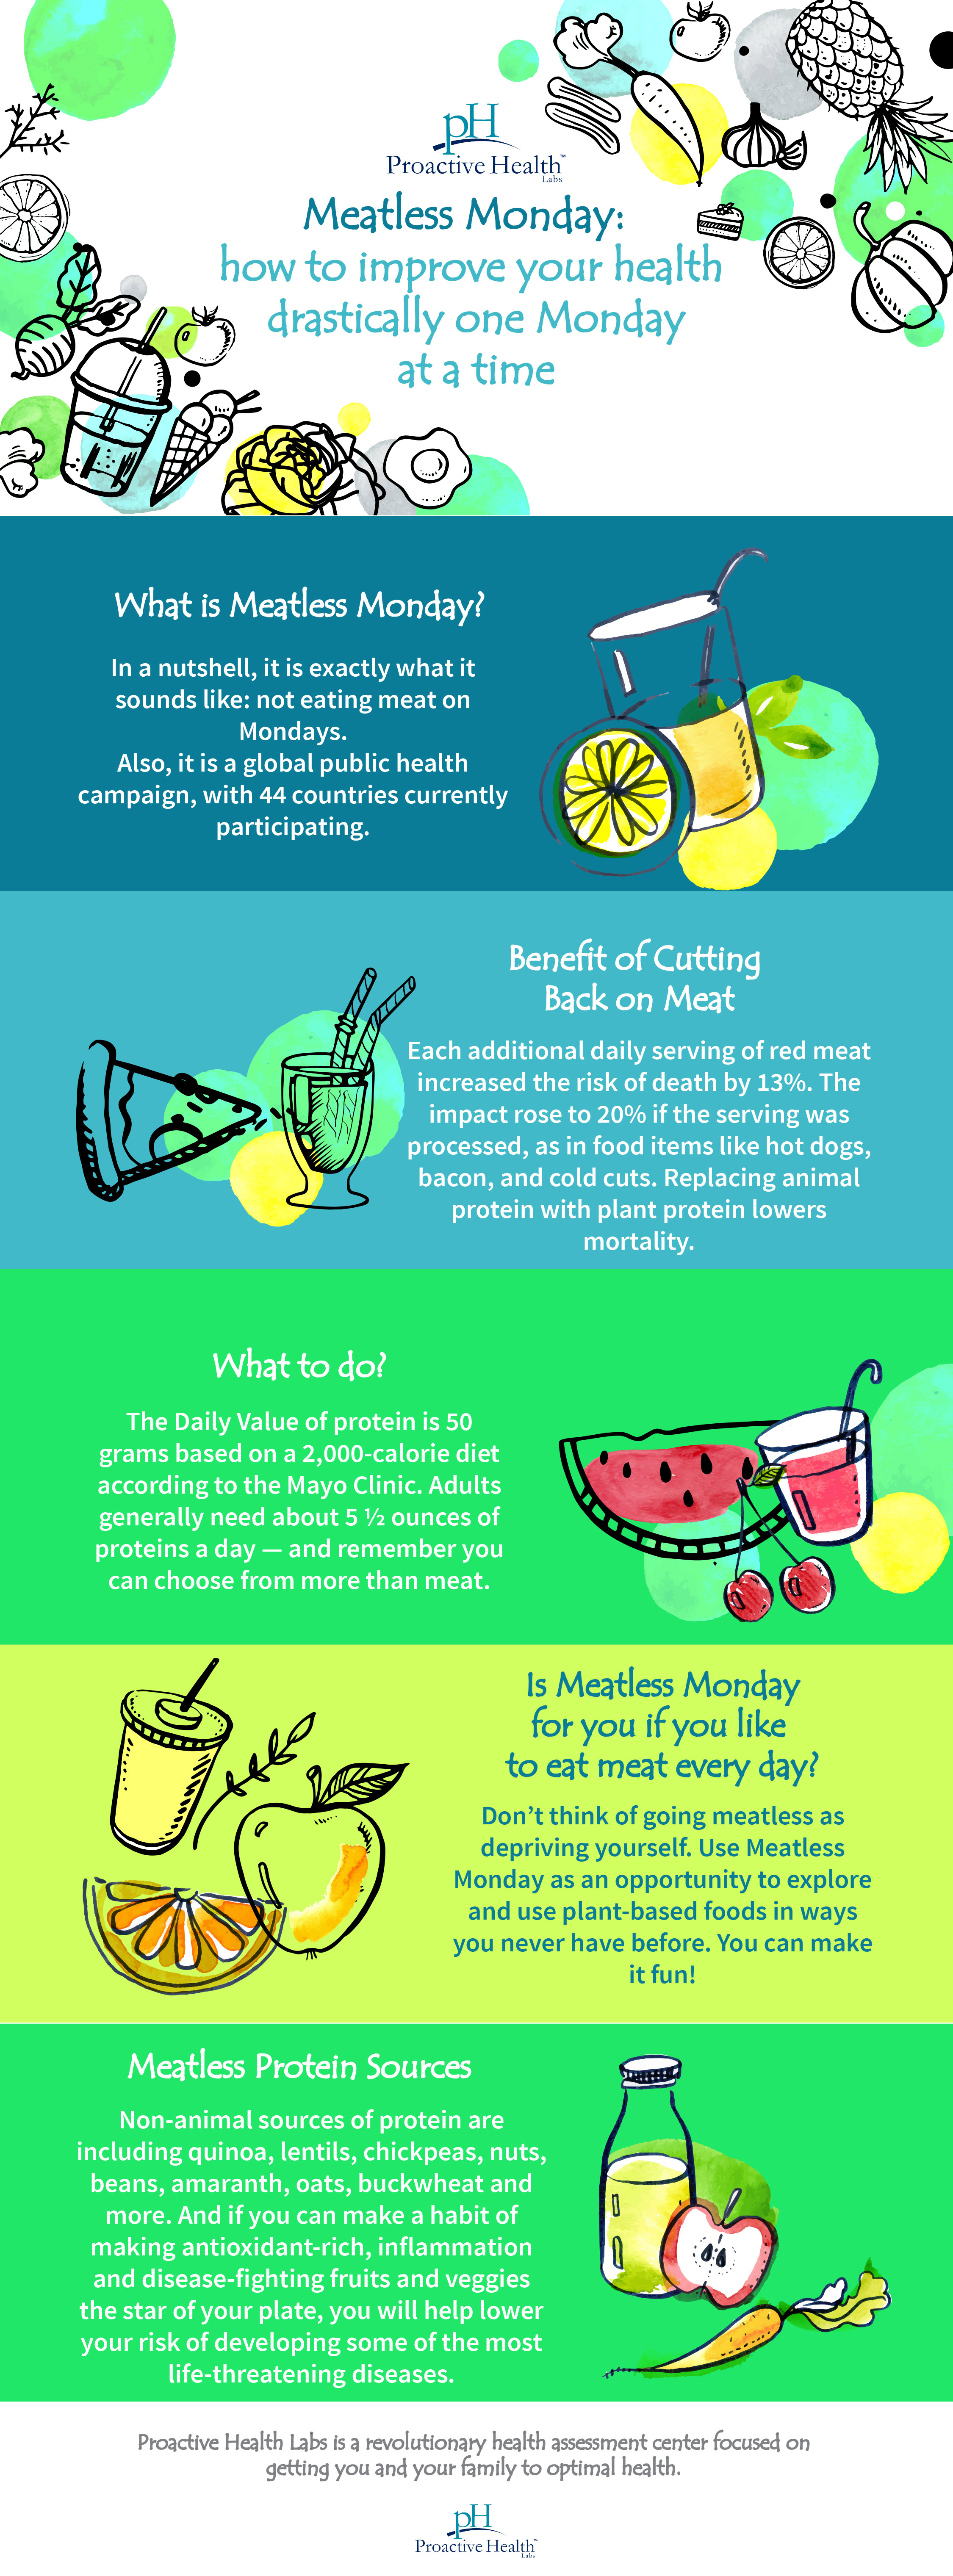 Meatless Monday Improve Your Health Drastically Infographic